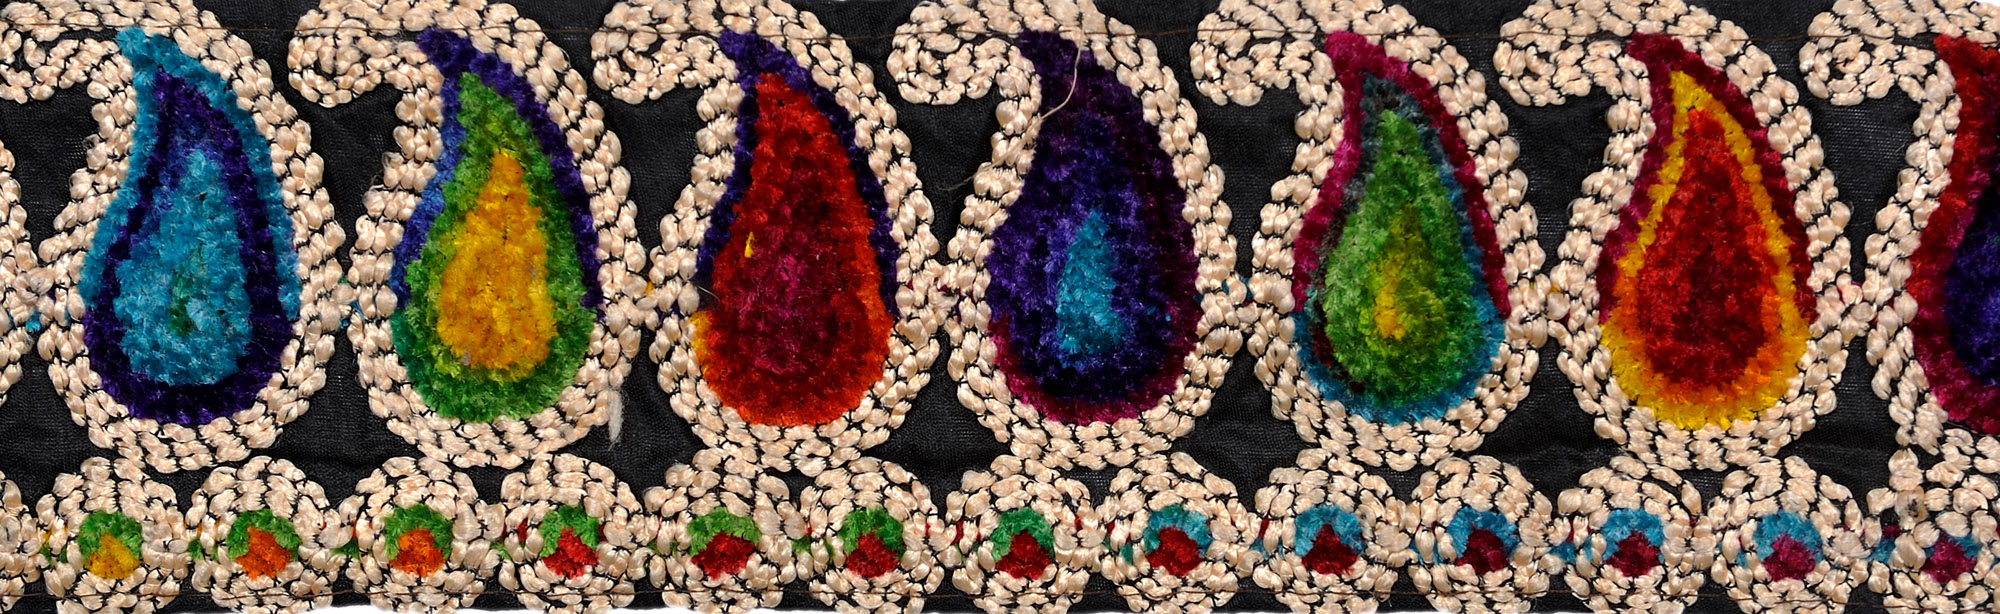 Multicolor fabric border with embroidered paisleys in